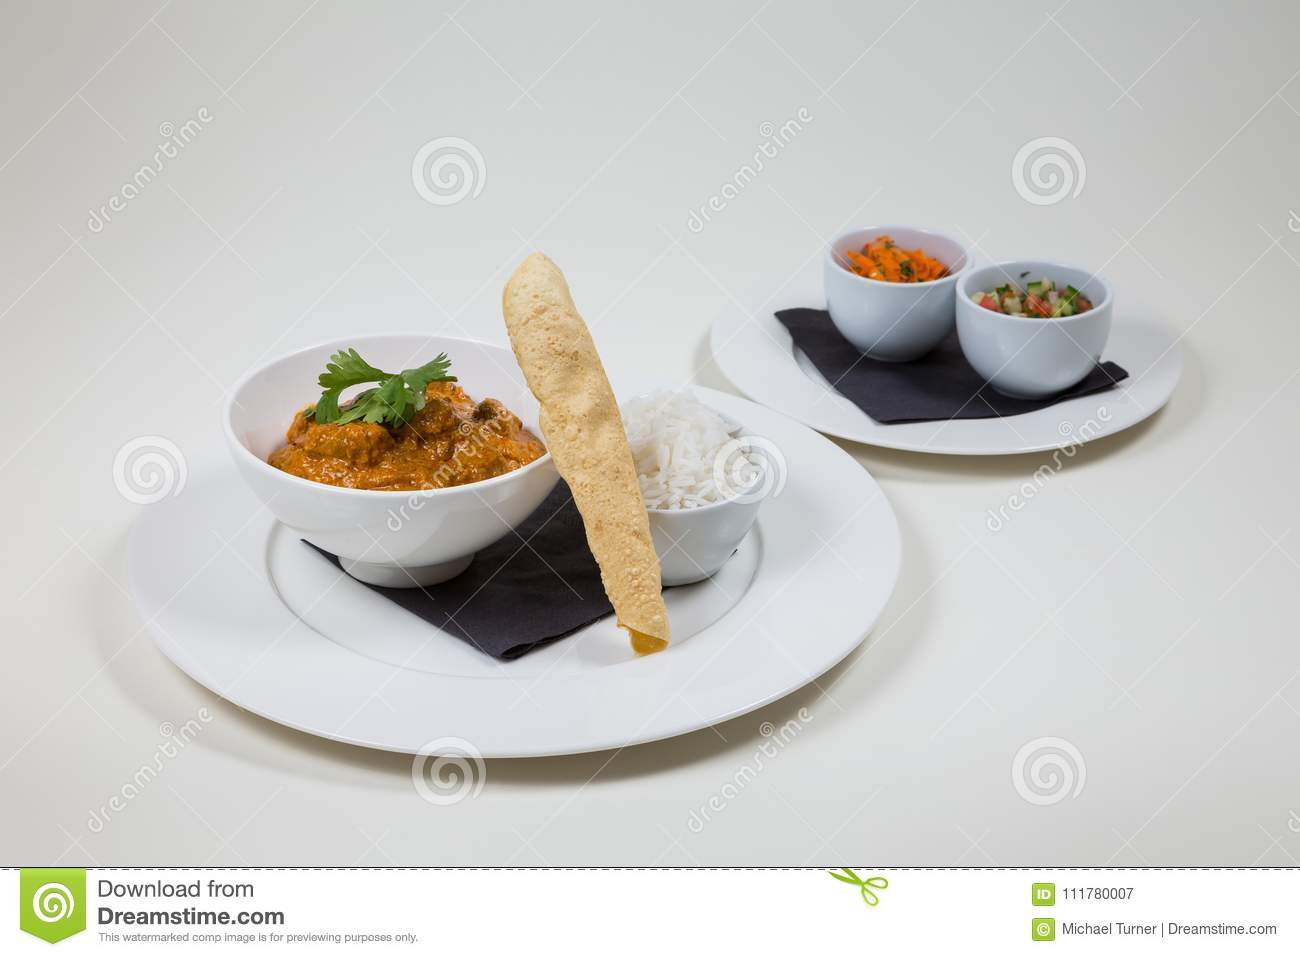 Indian Curry in a white bowl with rice on a white plate on a white background isolated